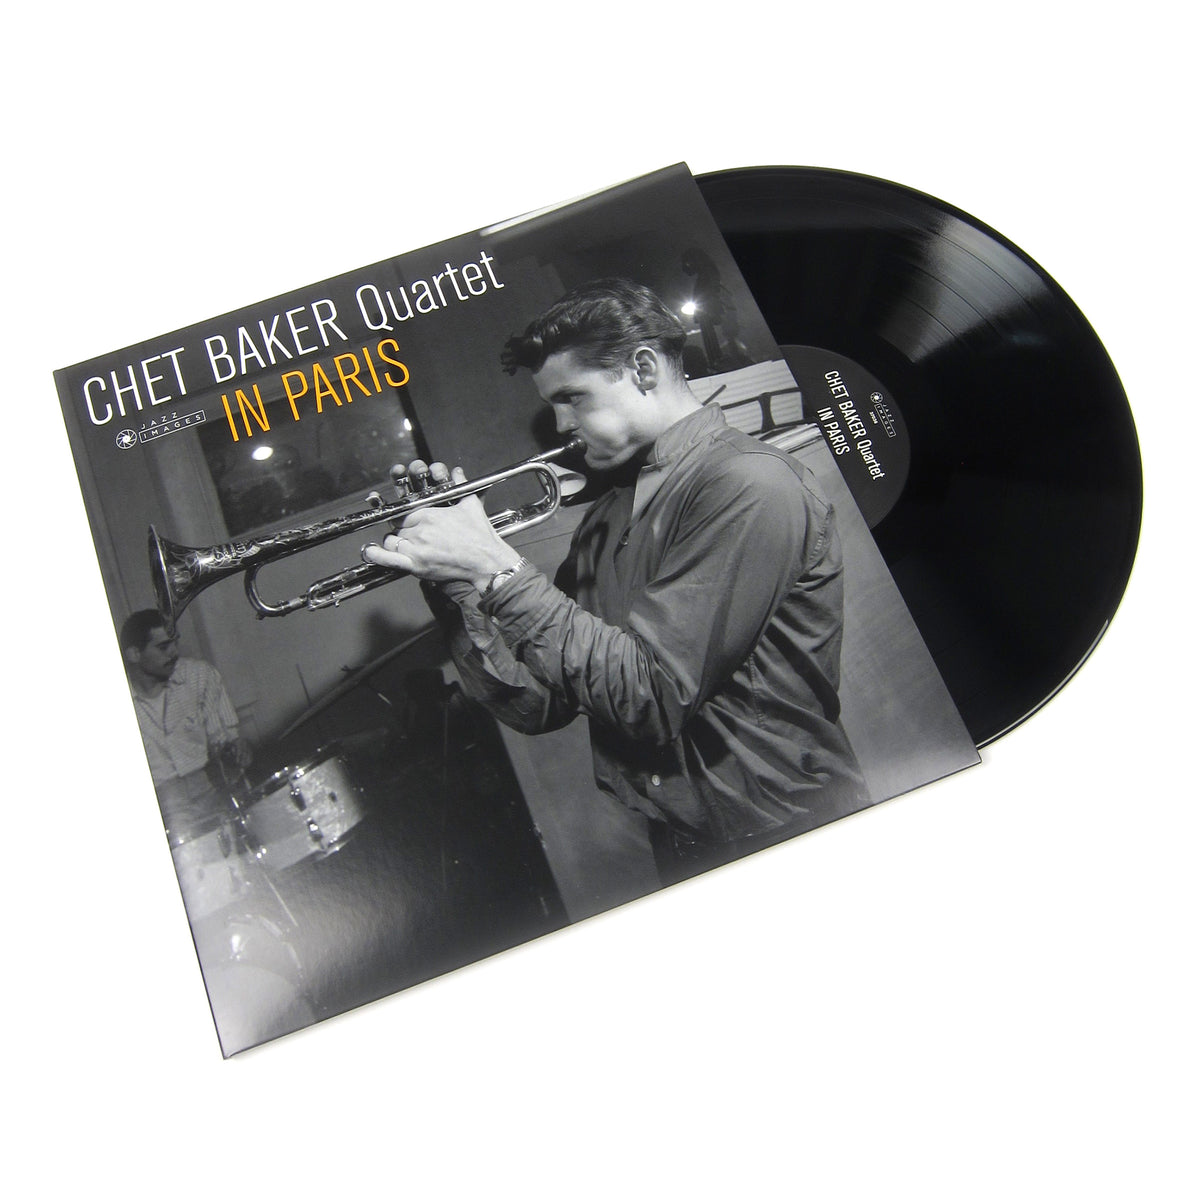 Chet Baker Quartet: In Paris (180g, Leloir Collection) Vinyl LP